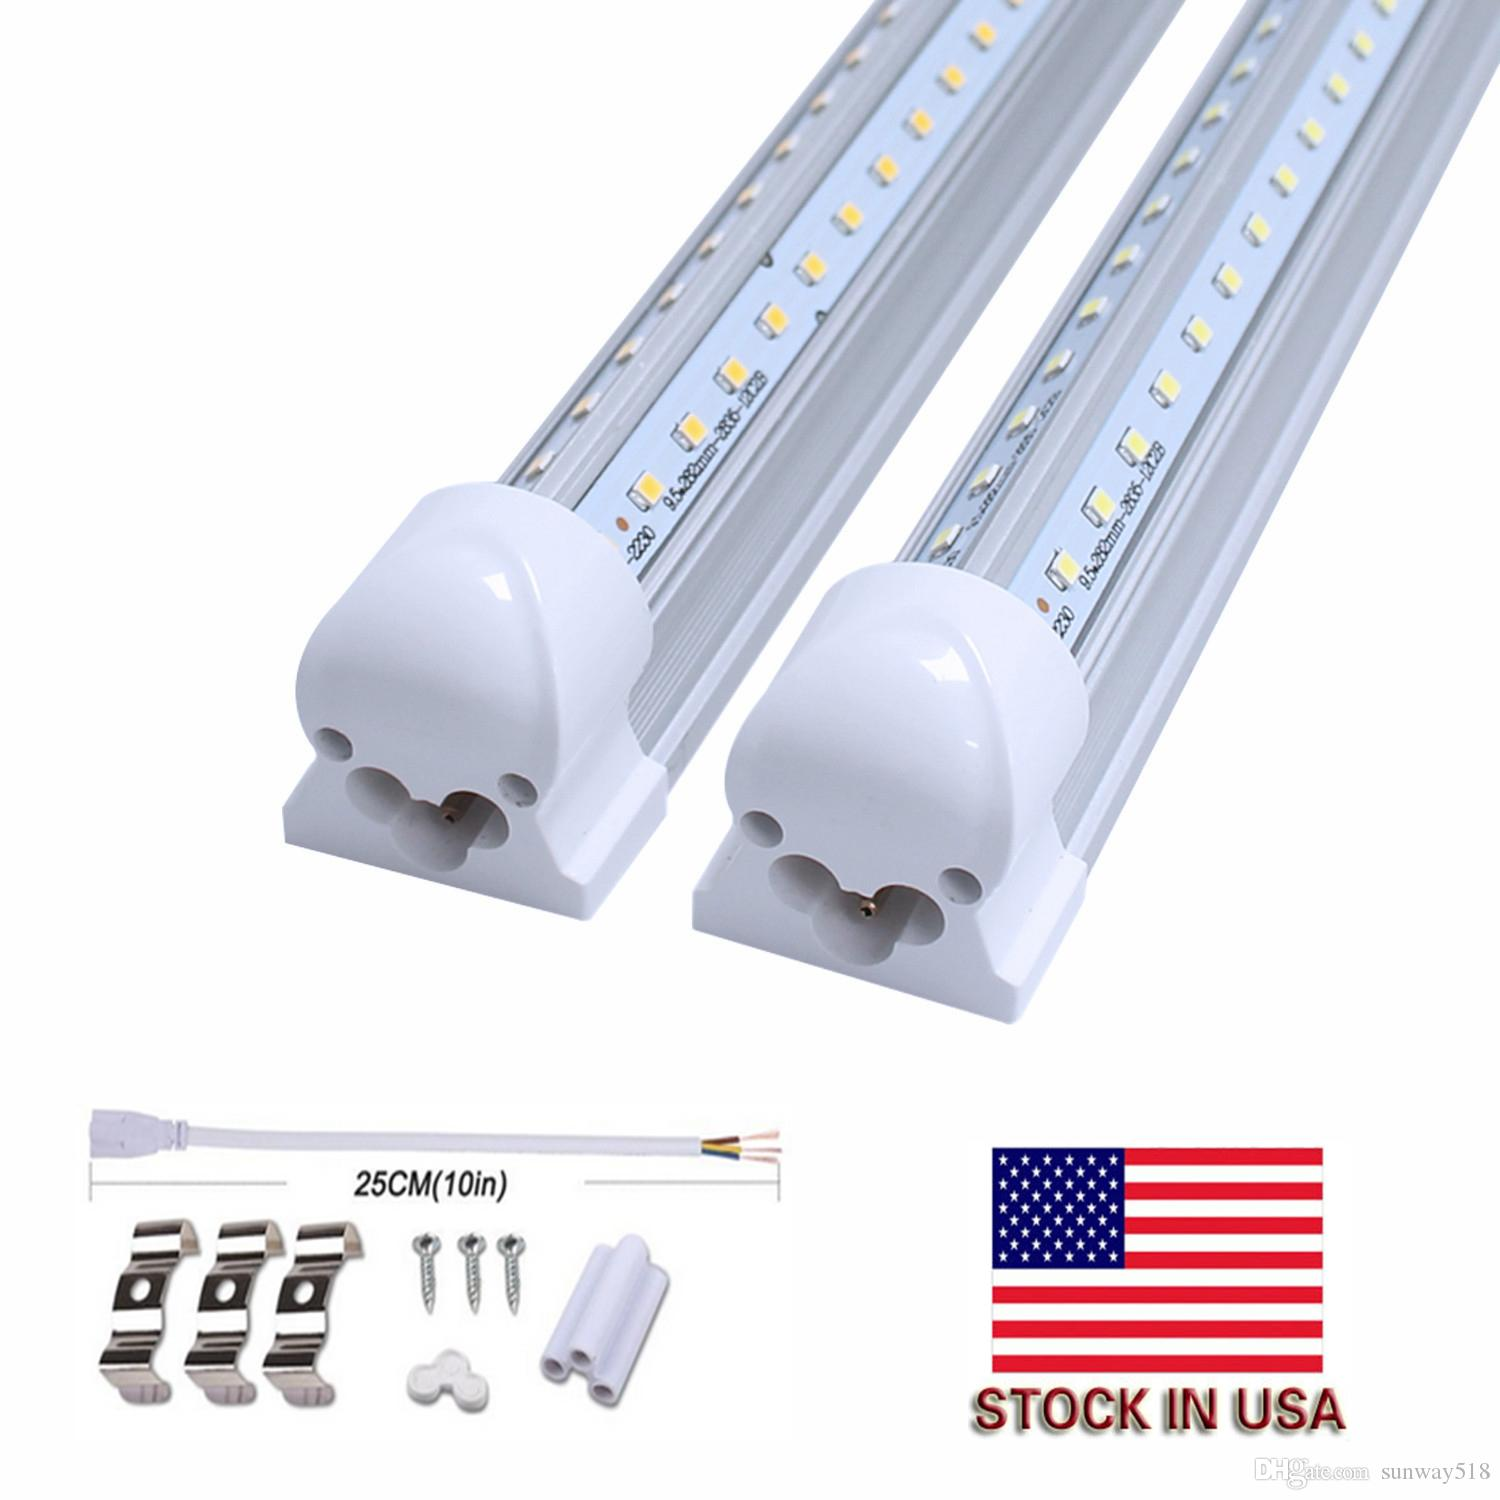 4ft Led T8 Tubes Light Smd 2835 Integrate Tube 5ft 6ft 8ft Fluorescent To Wiring Diagram Lights V Shaped White 6500k Double Row Circuit